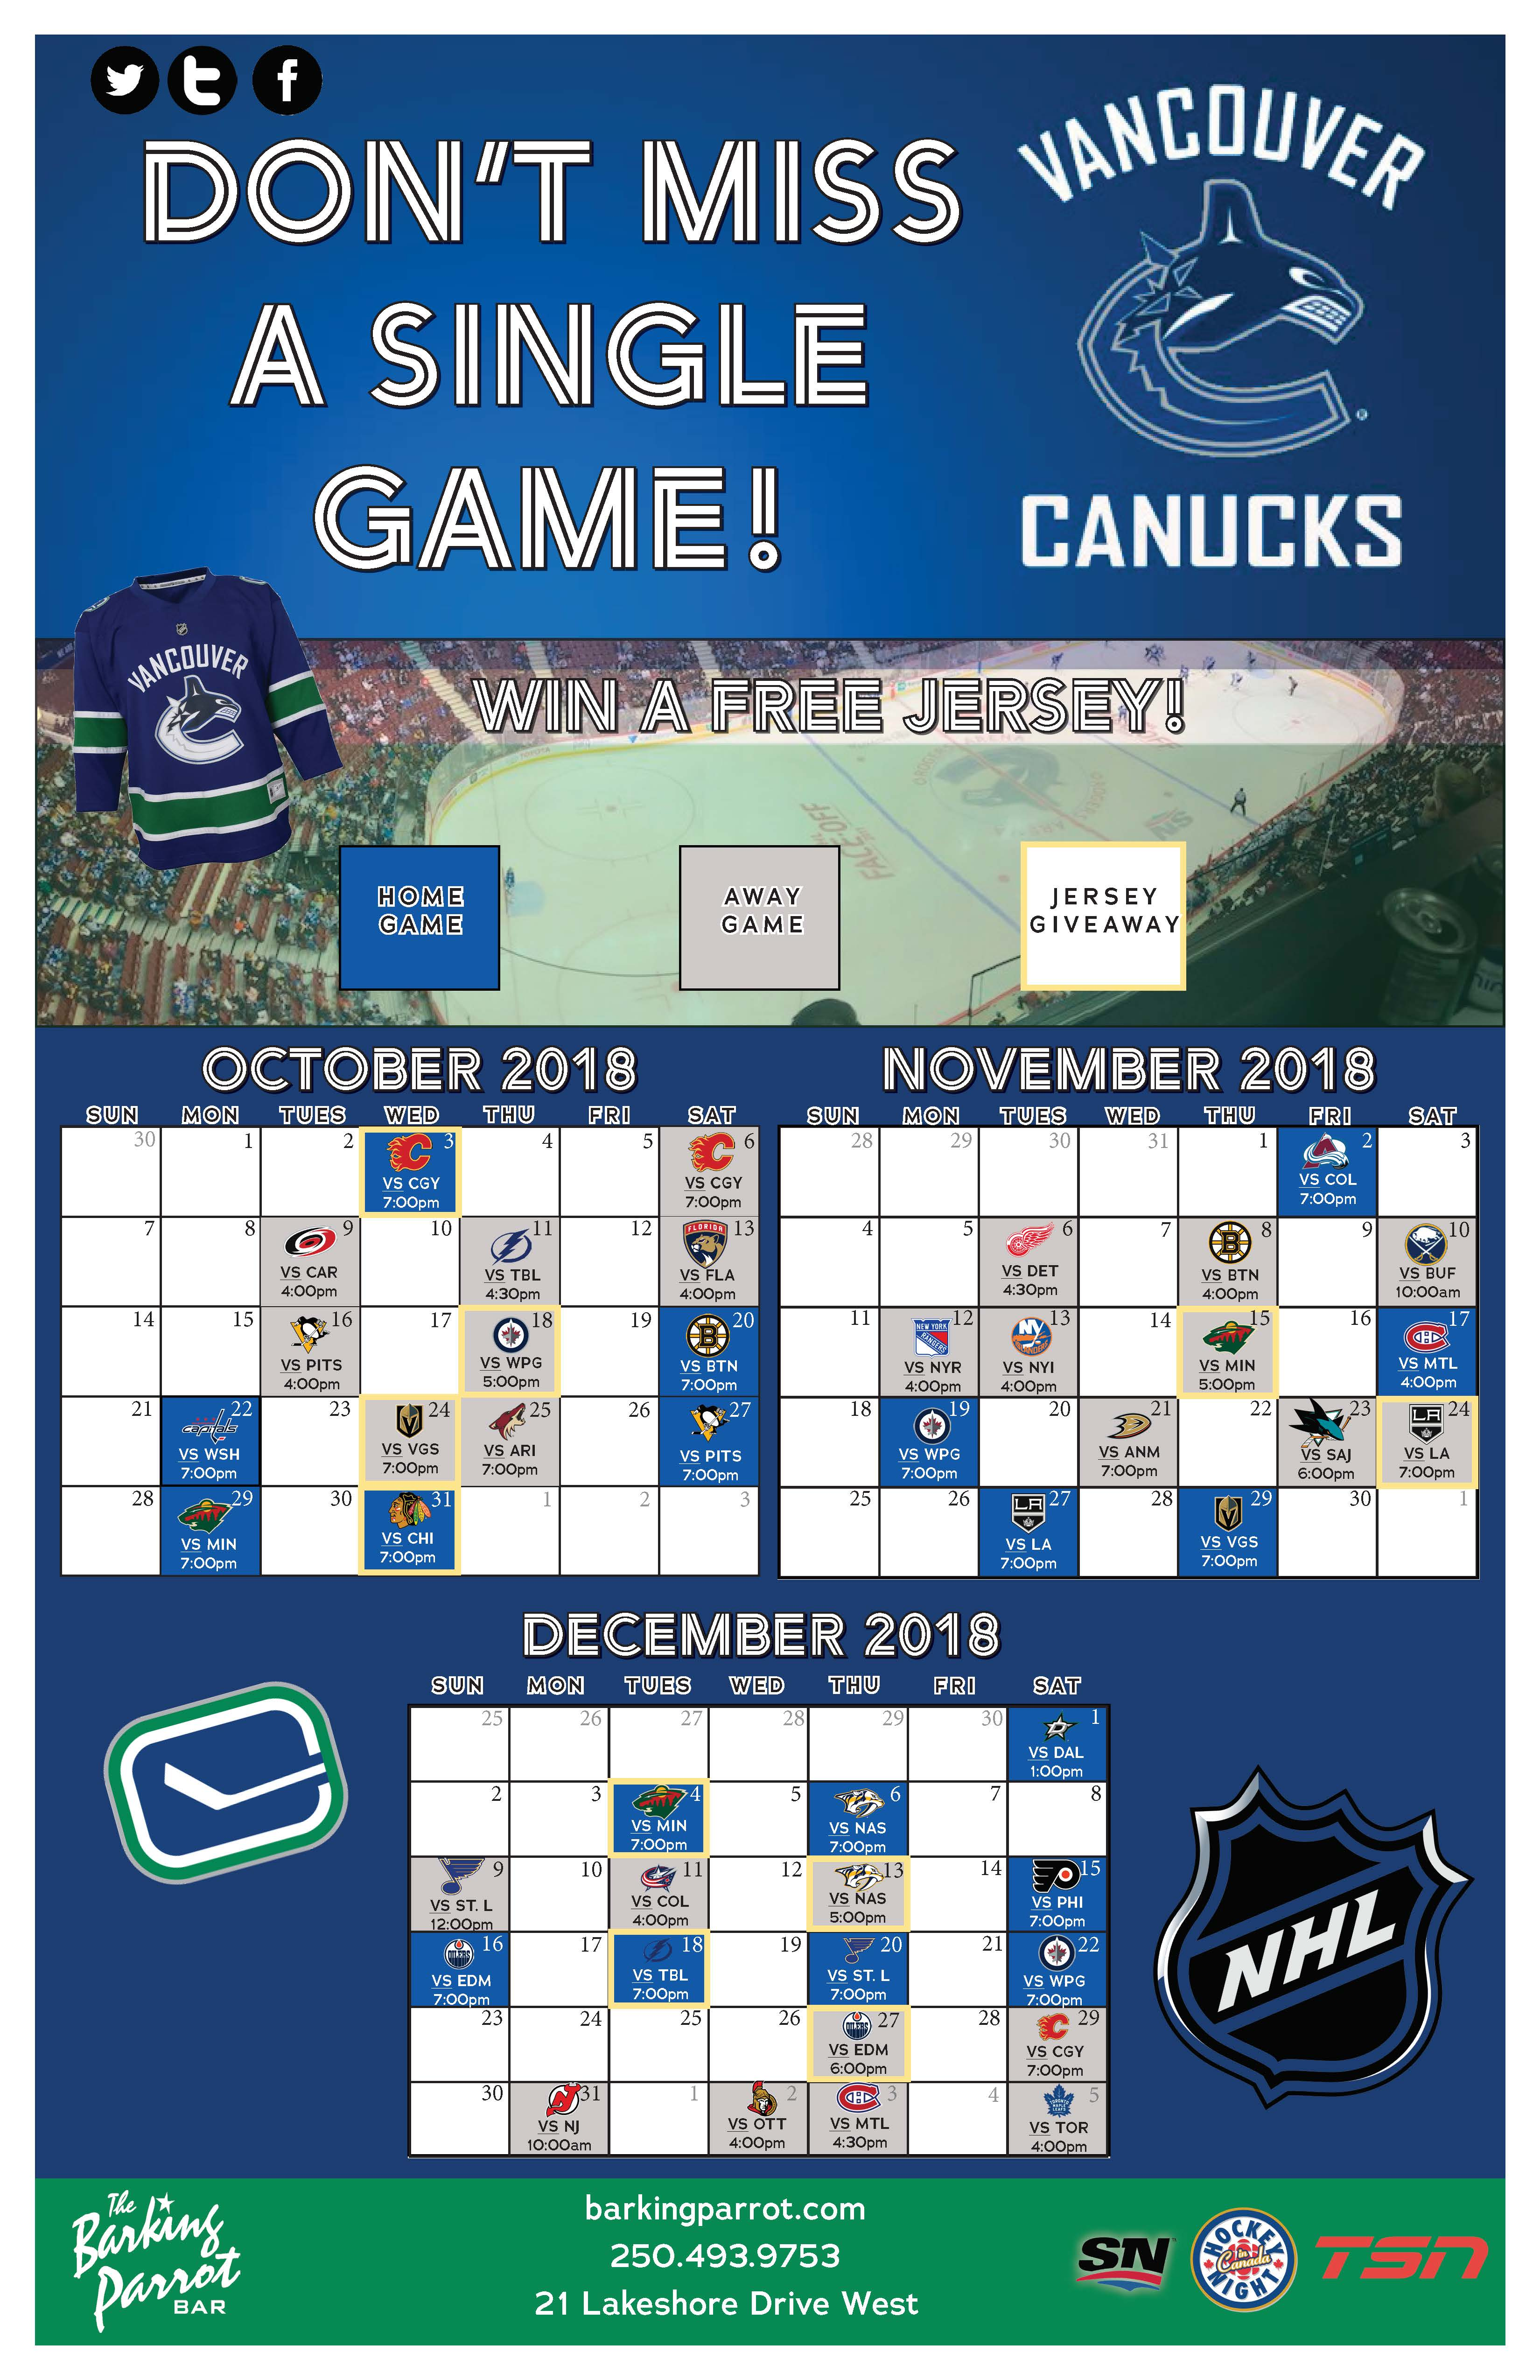 Canucks Jersey Giveaway